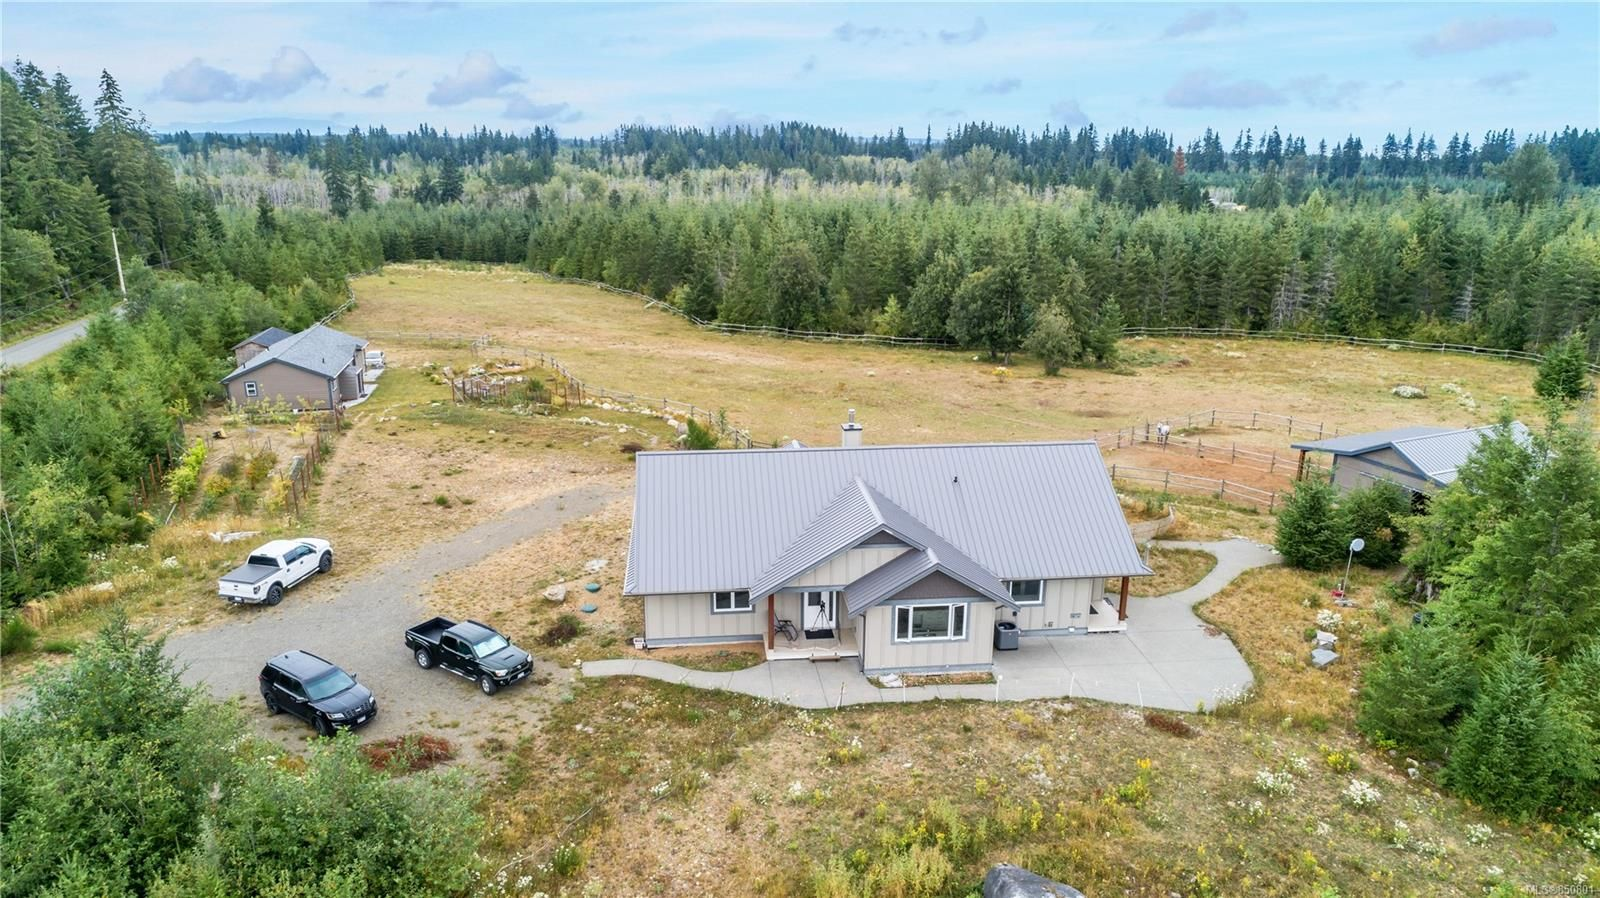 Main Photo: 4185 Chantrelle Way in : CR Campbell River South House for sale (Campbell River)  : MLS®# 850801